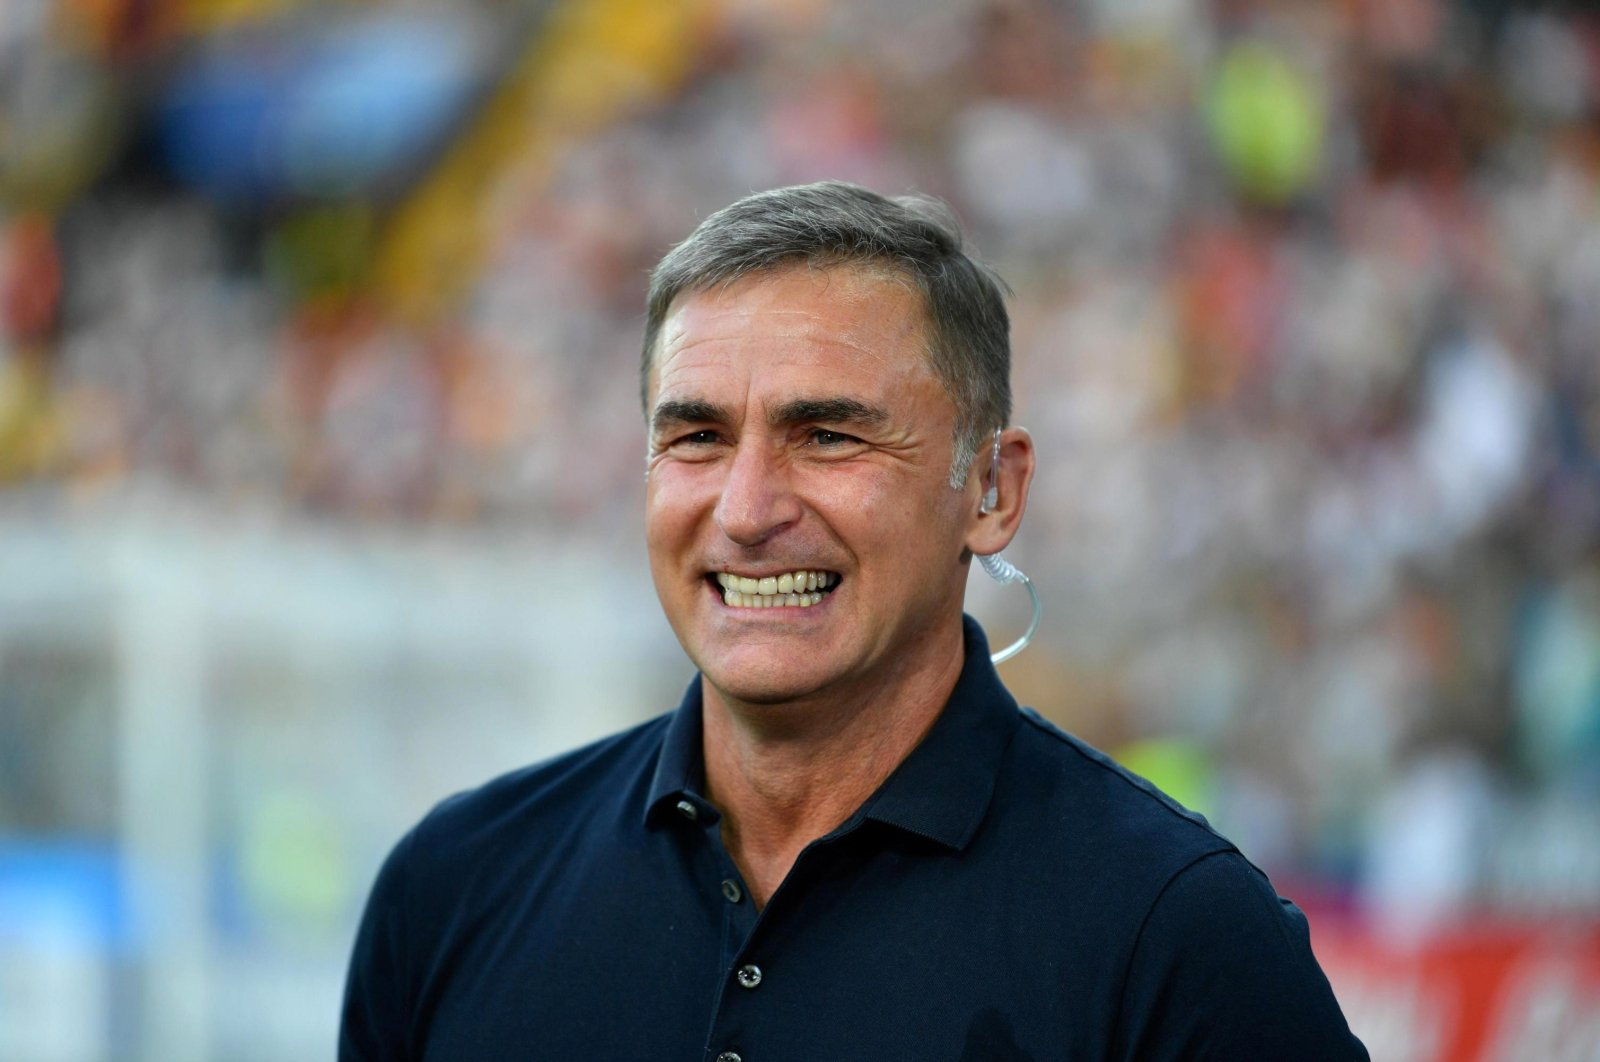 German coach Stefan Kuntz before the UEFA European Under-21 Championship 2019 final soccer match between Spain and Germany in Udine, Italy, June 30, 2019. (EPA Photo)